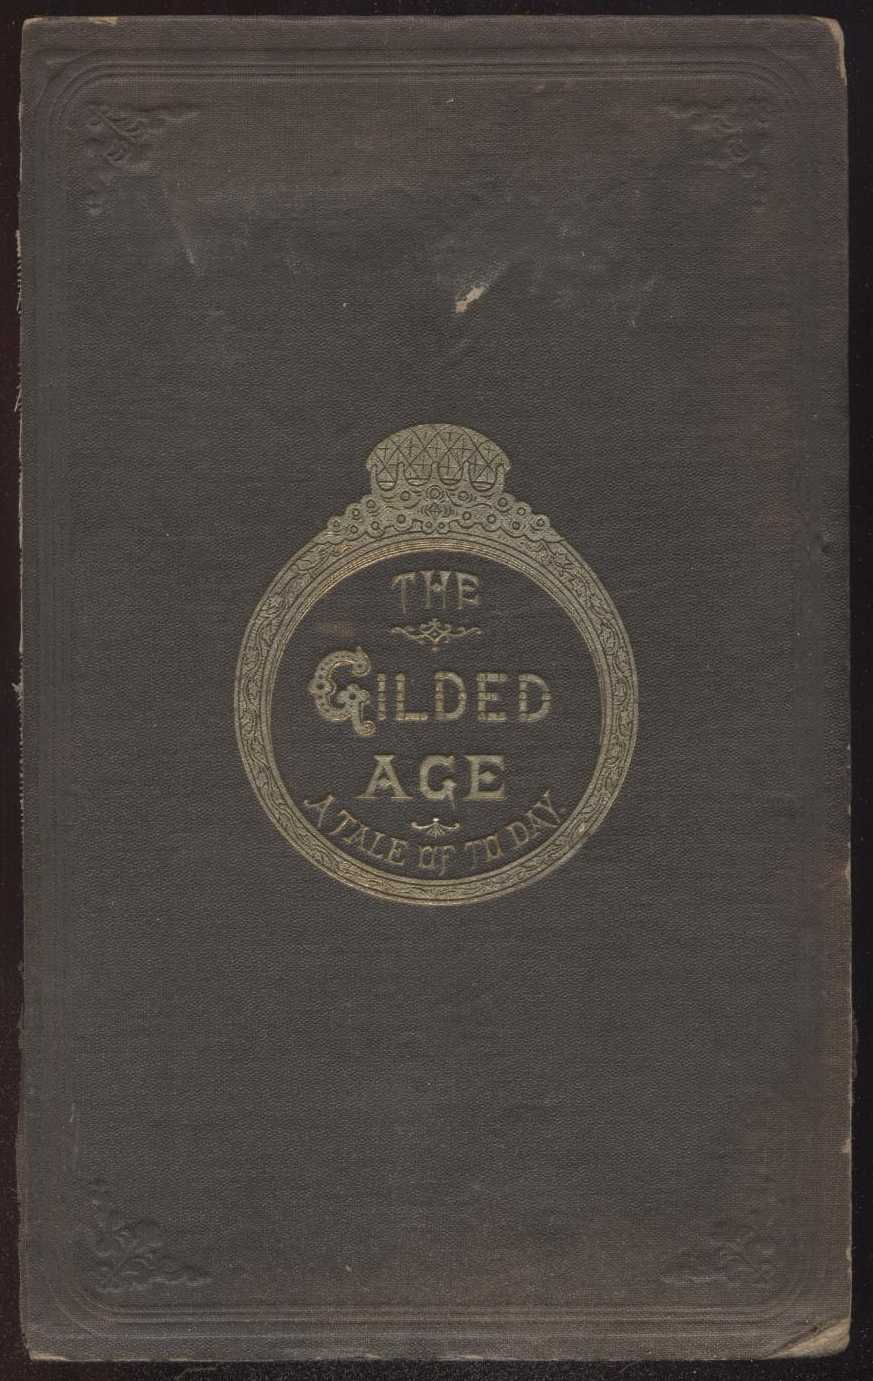 The Gilded Age By Twain And Warner Part 7